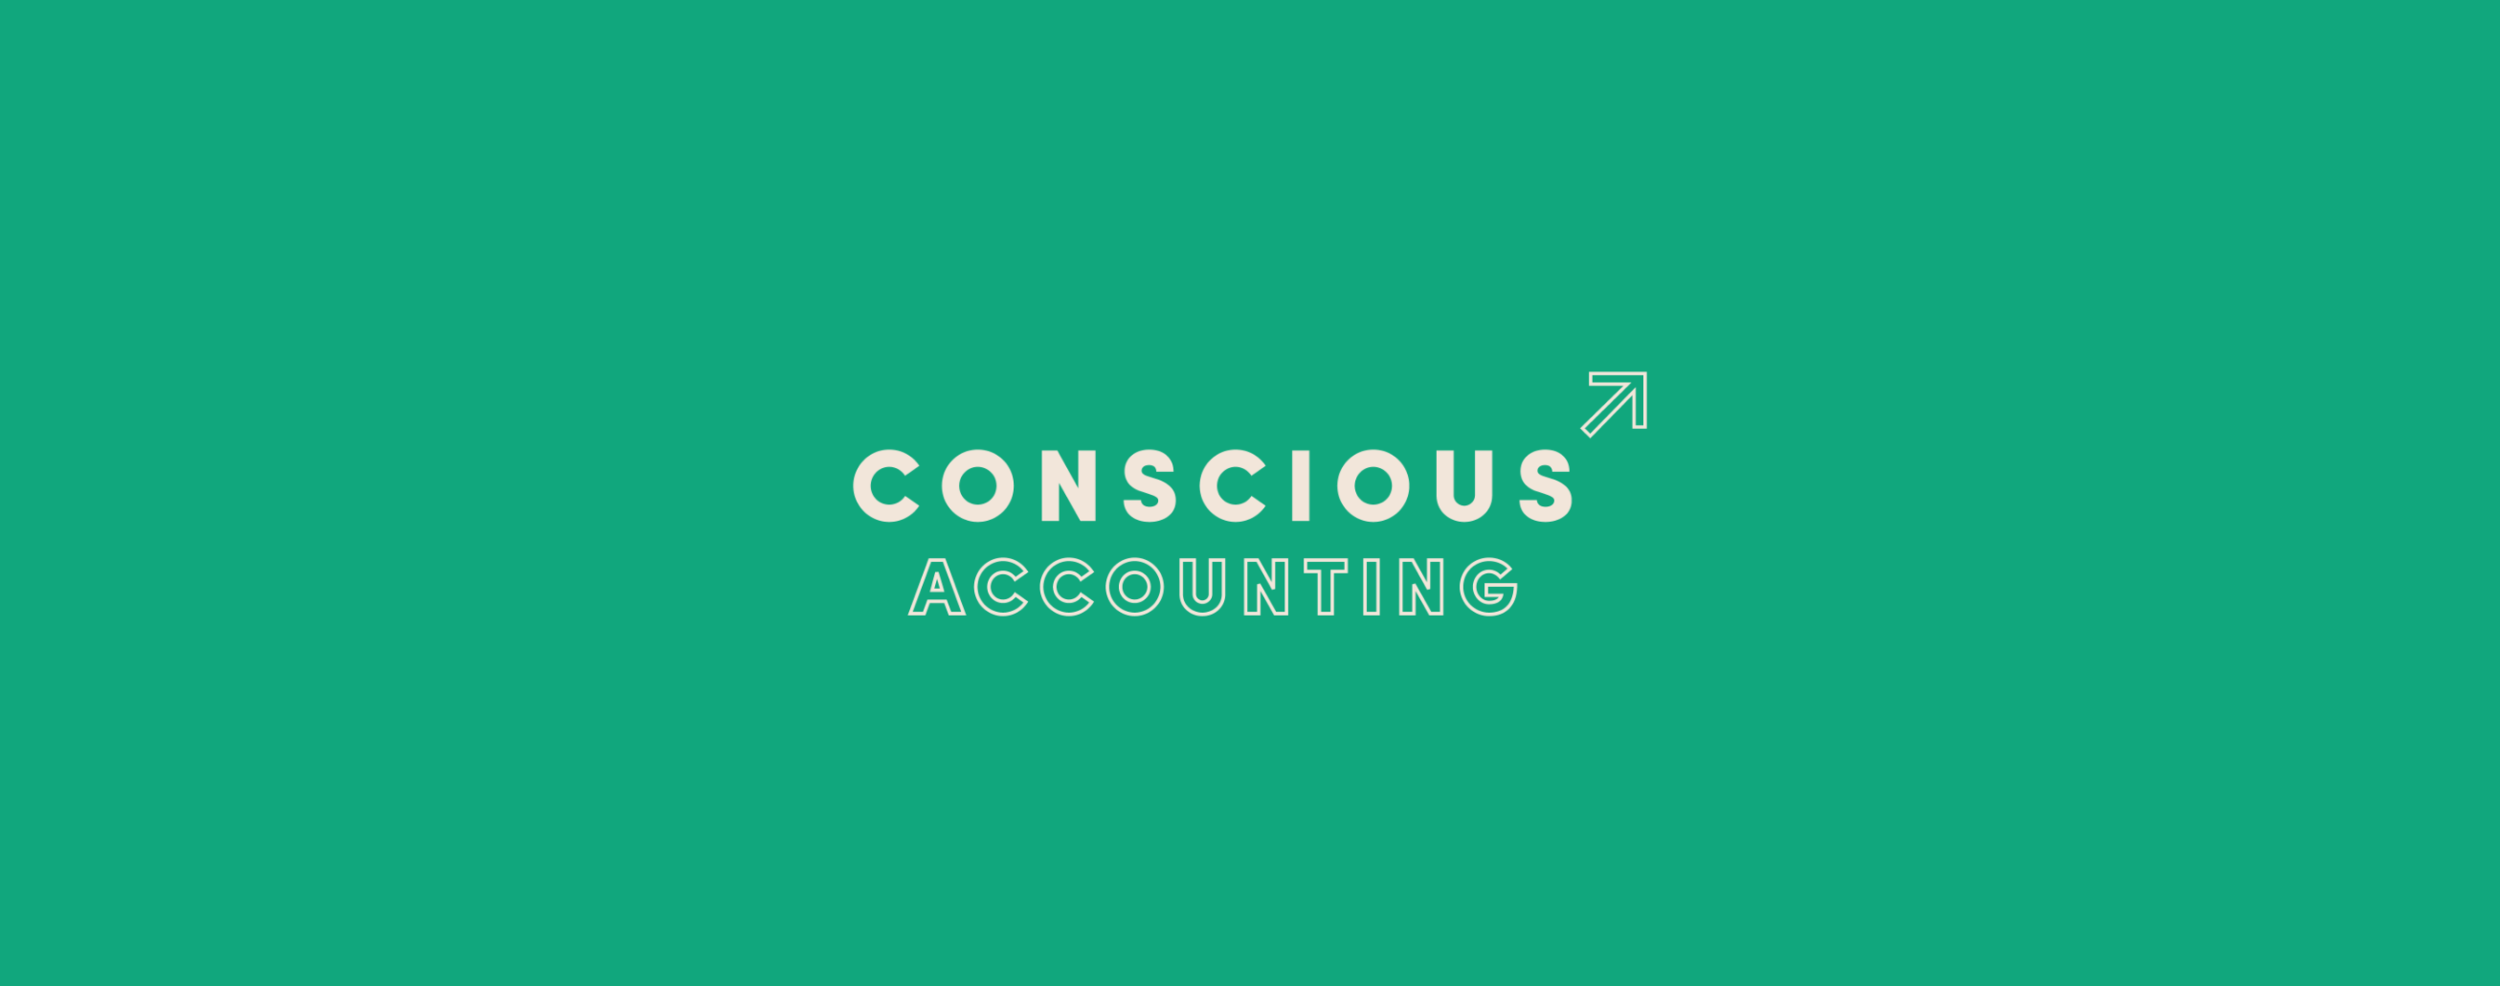 Conscious_Accounting_Main_Logo@2x.png